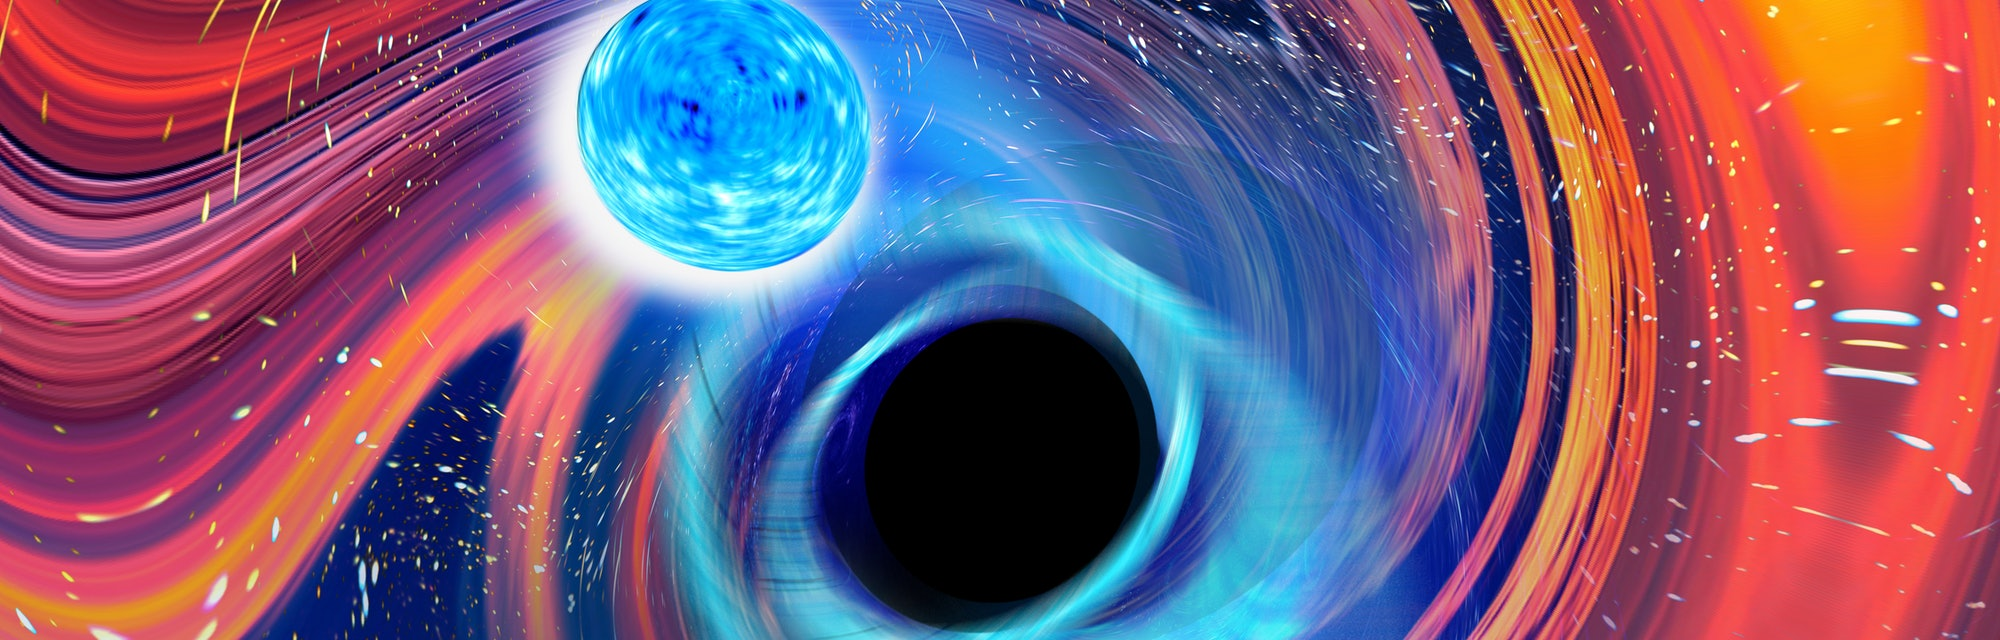 An artist's rendering of a blue neutron star and a black hole on a swirled rainbow background.